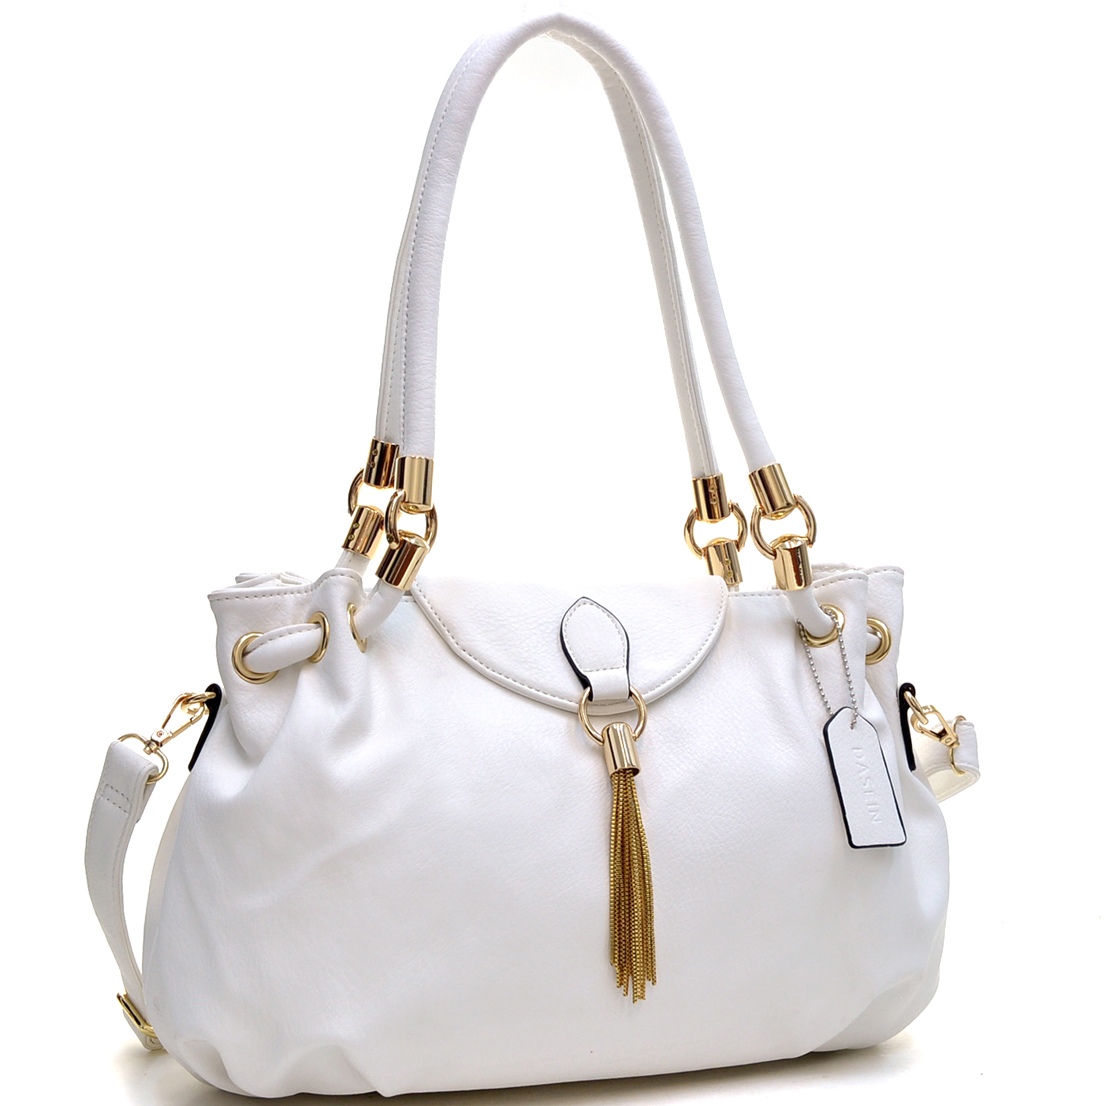 Loop Through Shoulder Bag with Tassel Accent